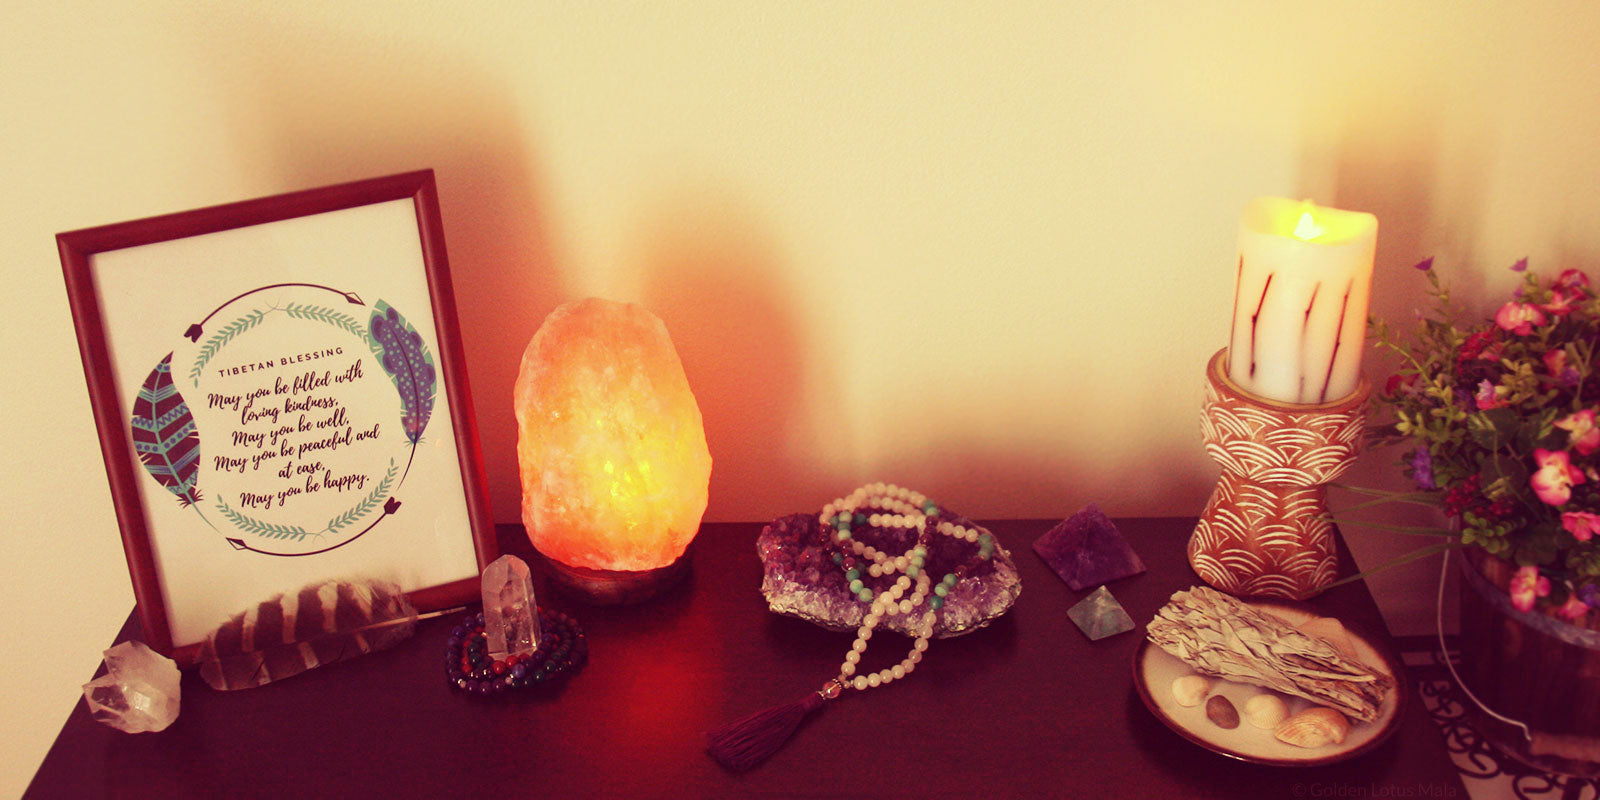 Meditation Altar with Mala Beads, Sage, Candles, and Inspirational Art